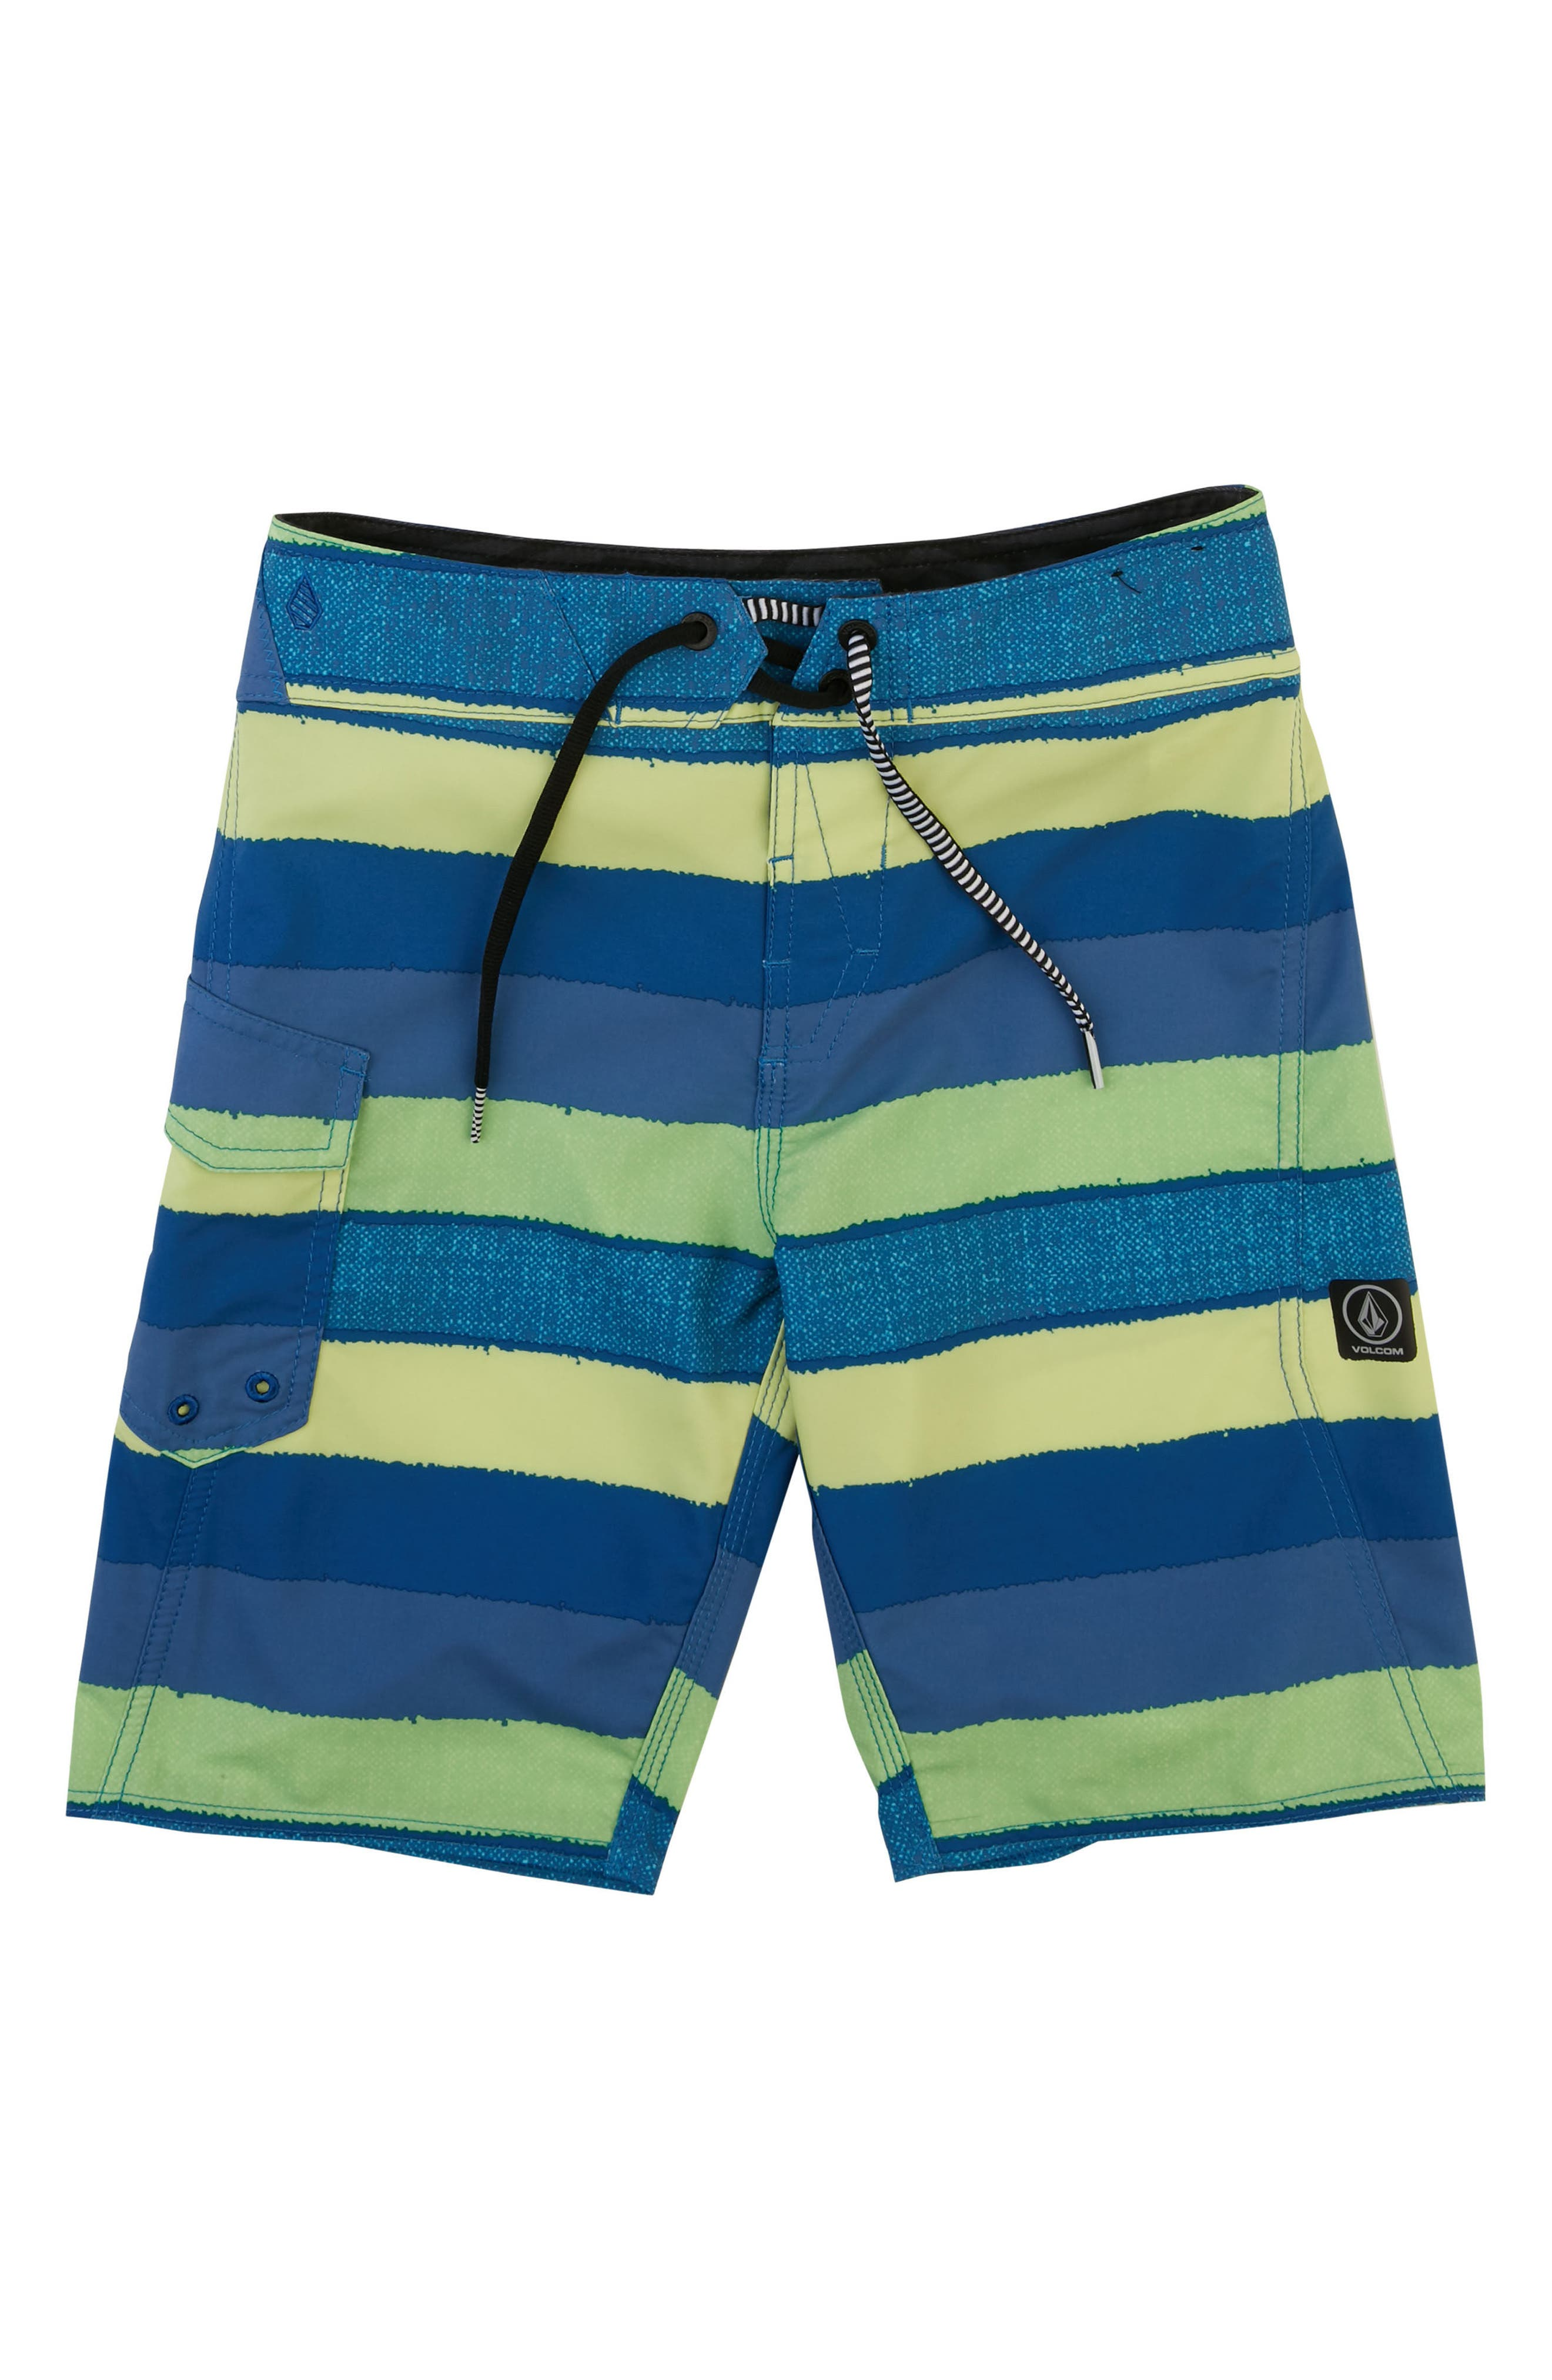 Magnetic Liney Mod Board Shorts,                             Main thumbnail 1, color,                             313